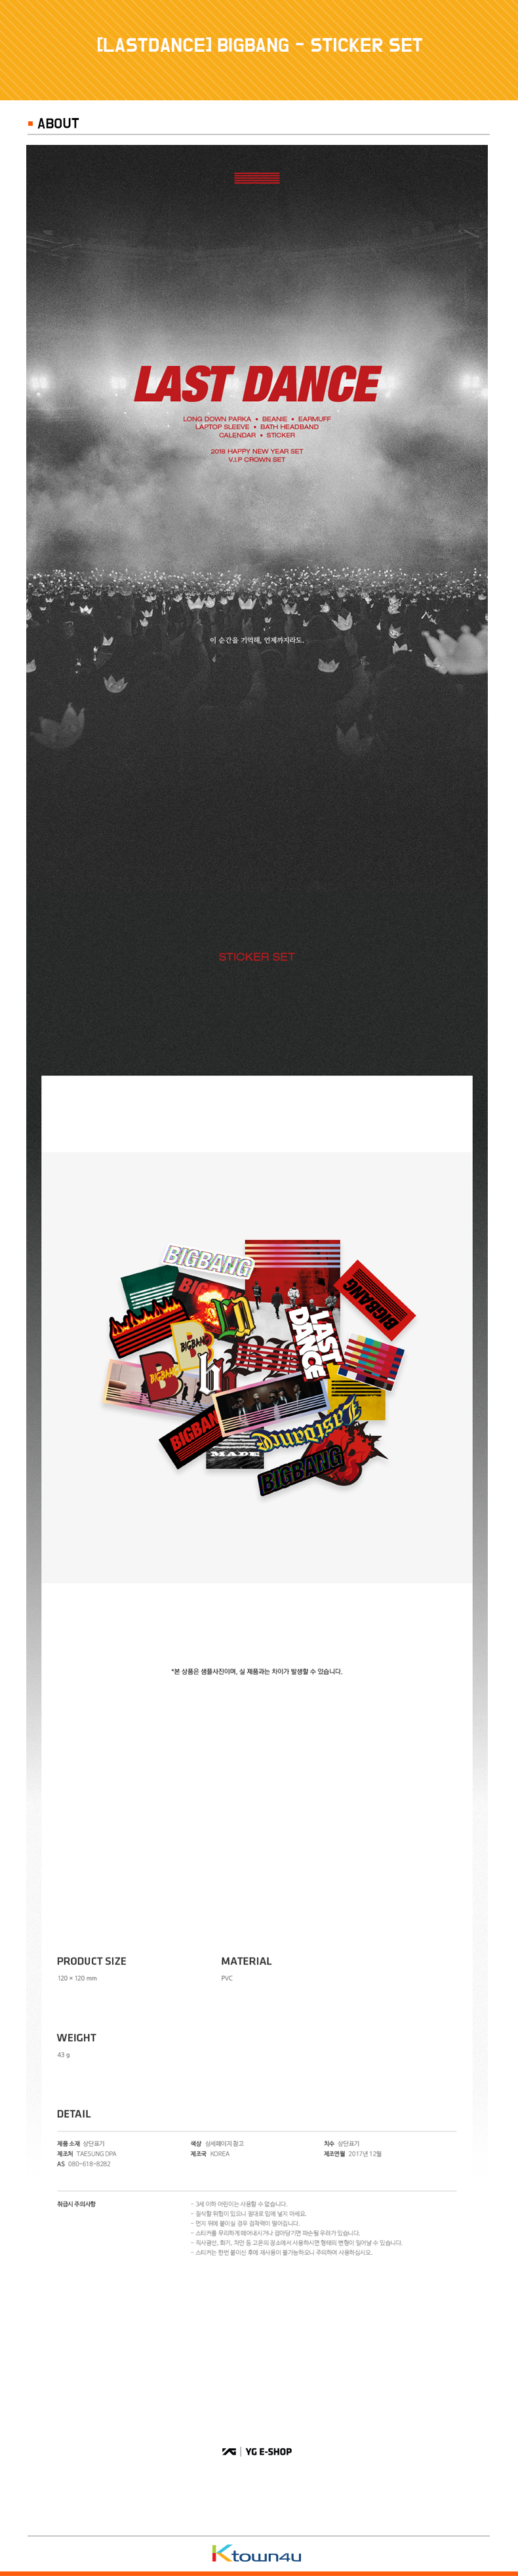 [LASTDANCE] BIGBANG - STICKER SET